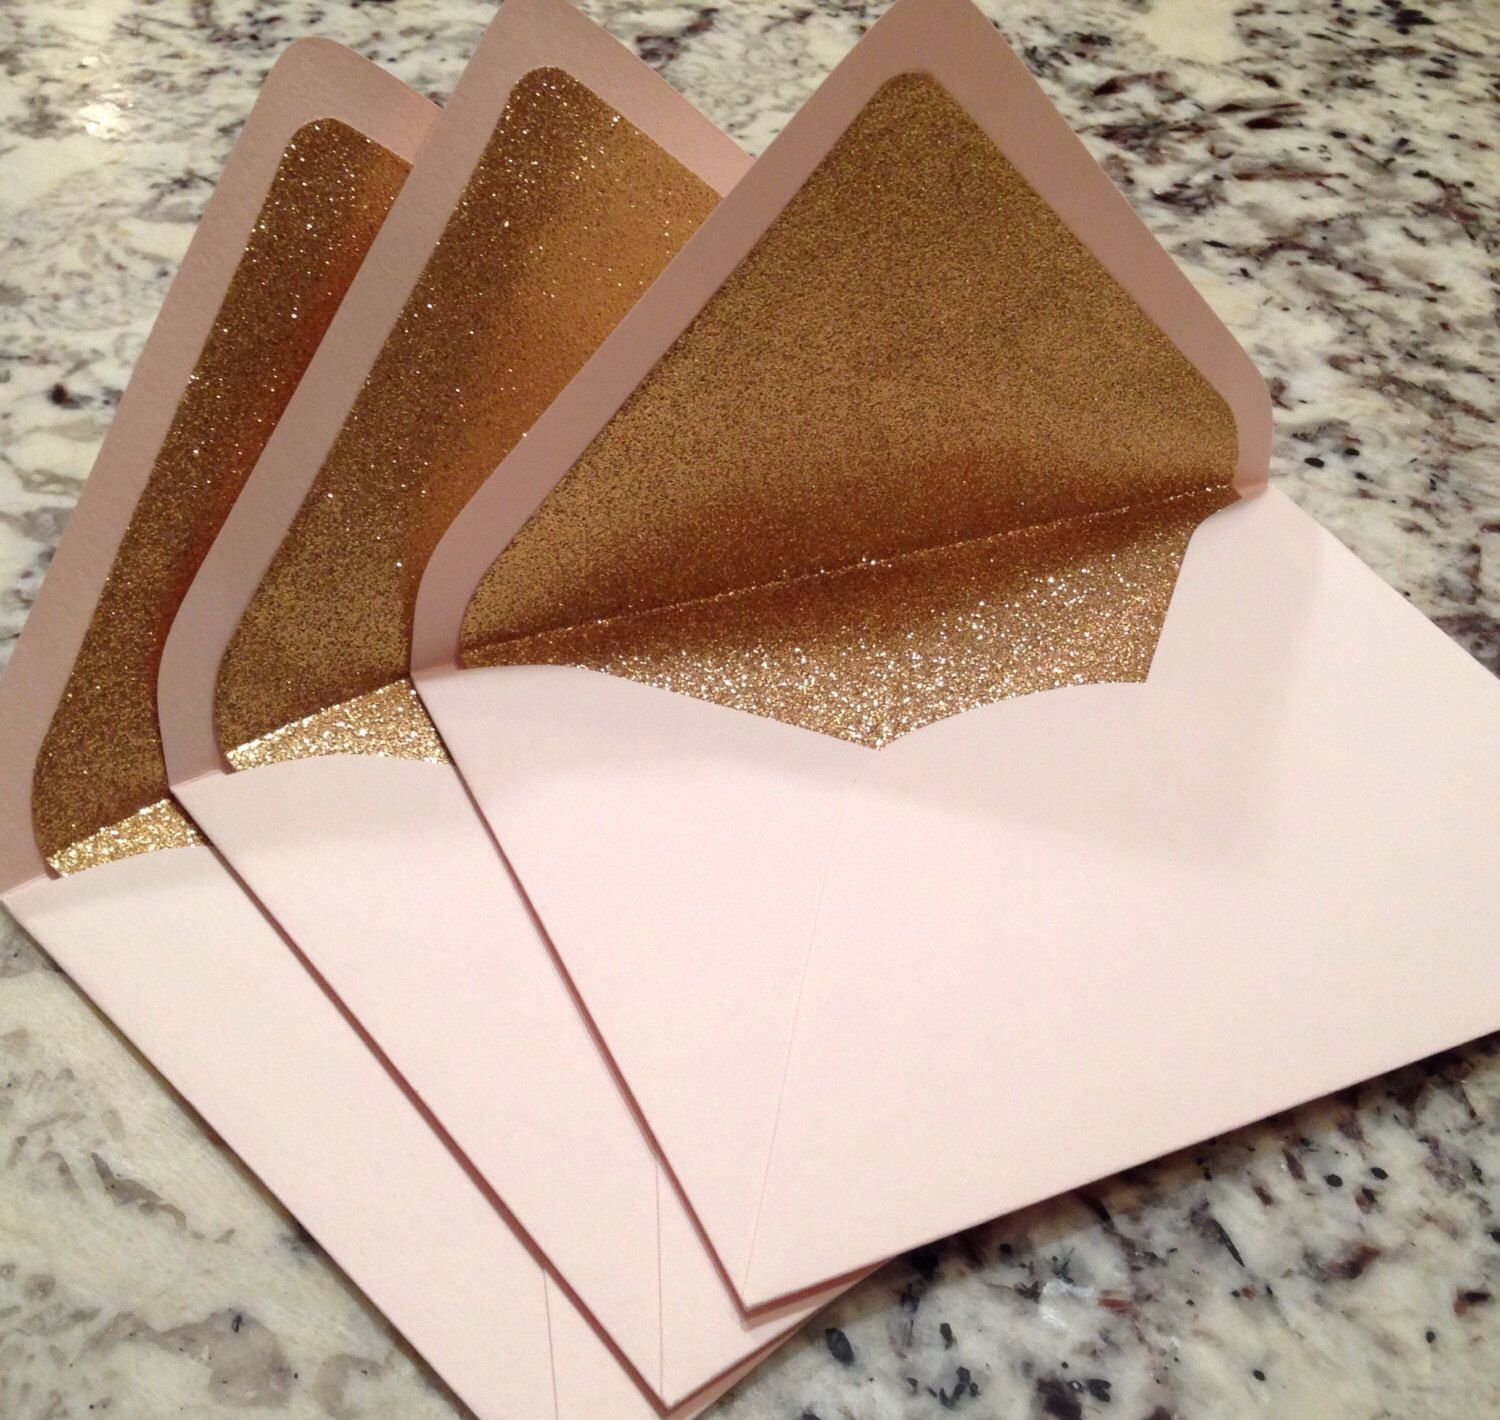 Gold color cardstock paper 5x7 - Luxe Blush A7 5x7 Gold Glitter Lined Envelopes Pale Pink Paper Source Envelopes By Seedinvites